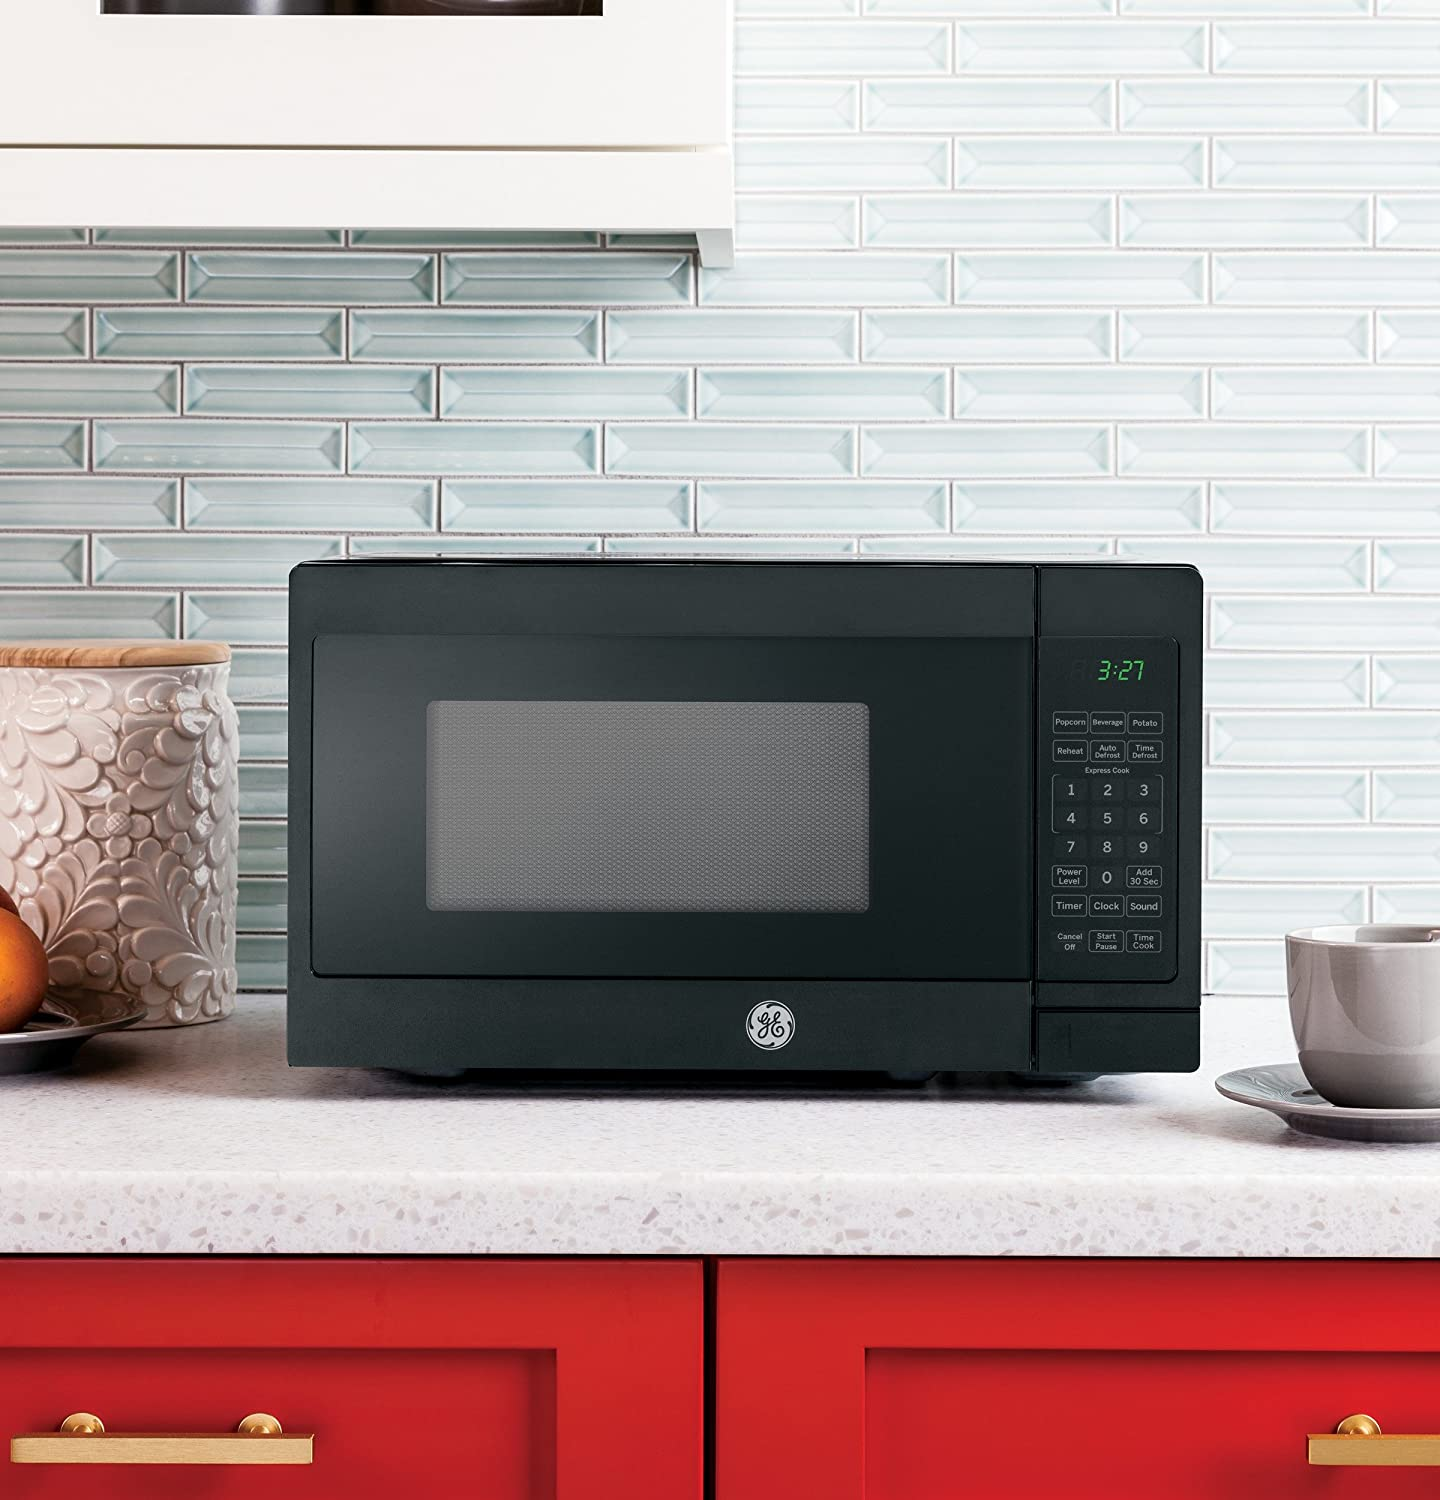 Amazon.com: GE 0.7 Cu. Ft. Capacity Countertop Microwave Oven ...